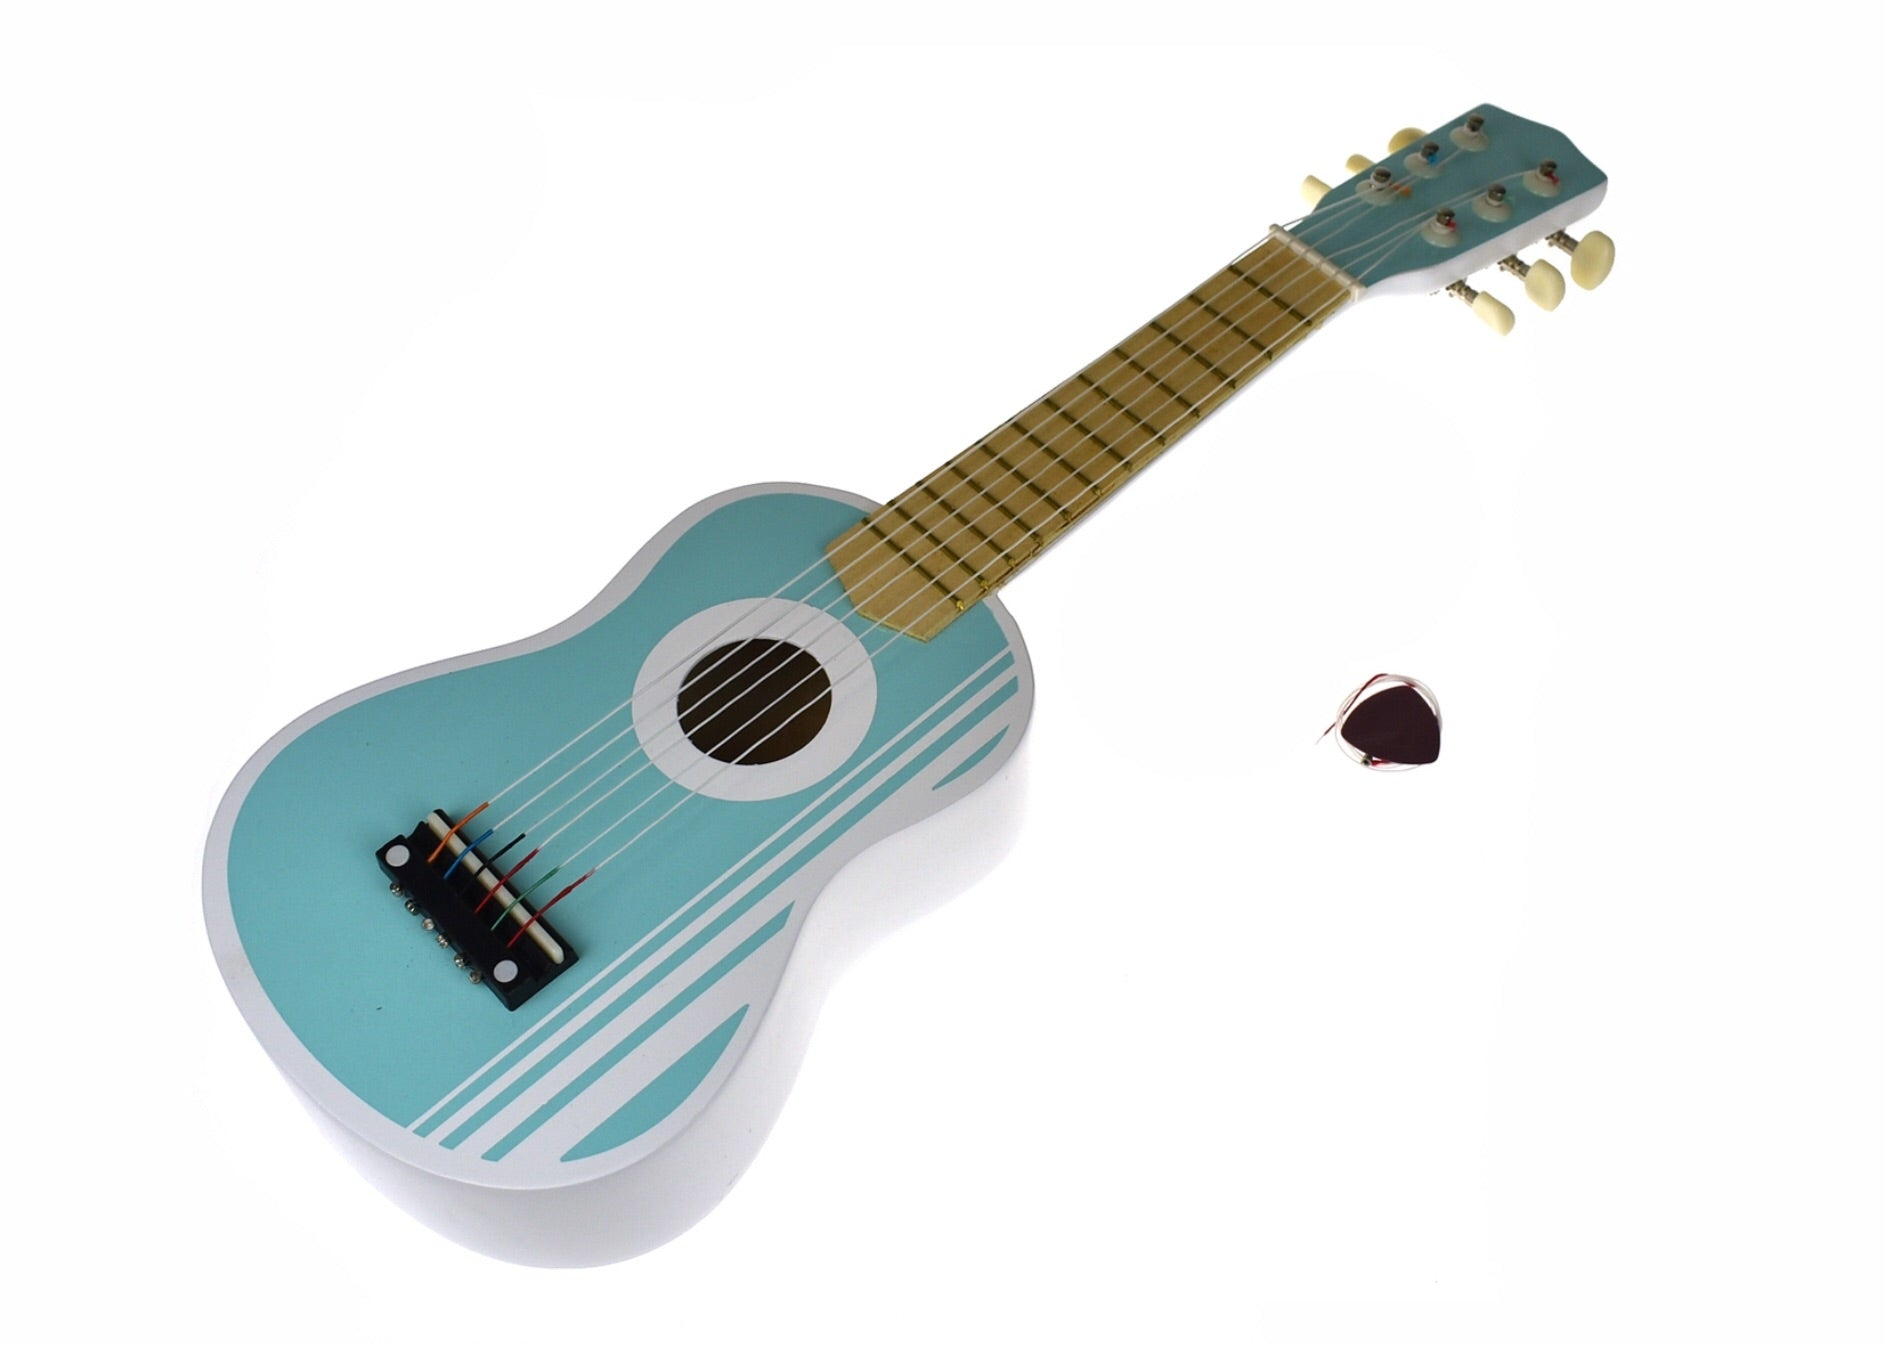 Koala Dream / Classic Calm Wooden Guitar - Spring Green